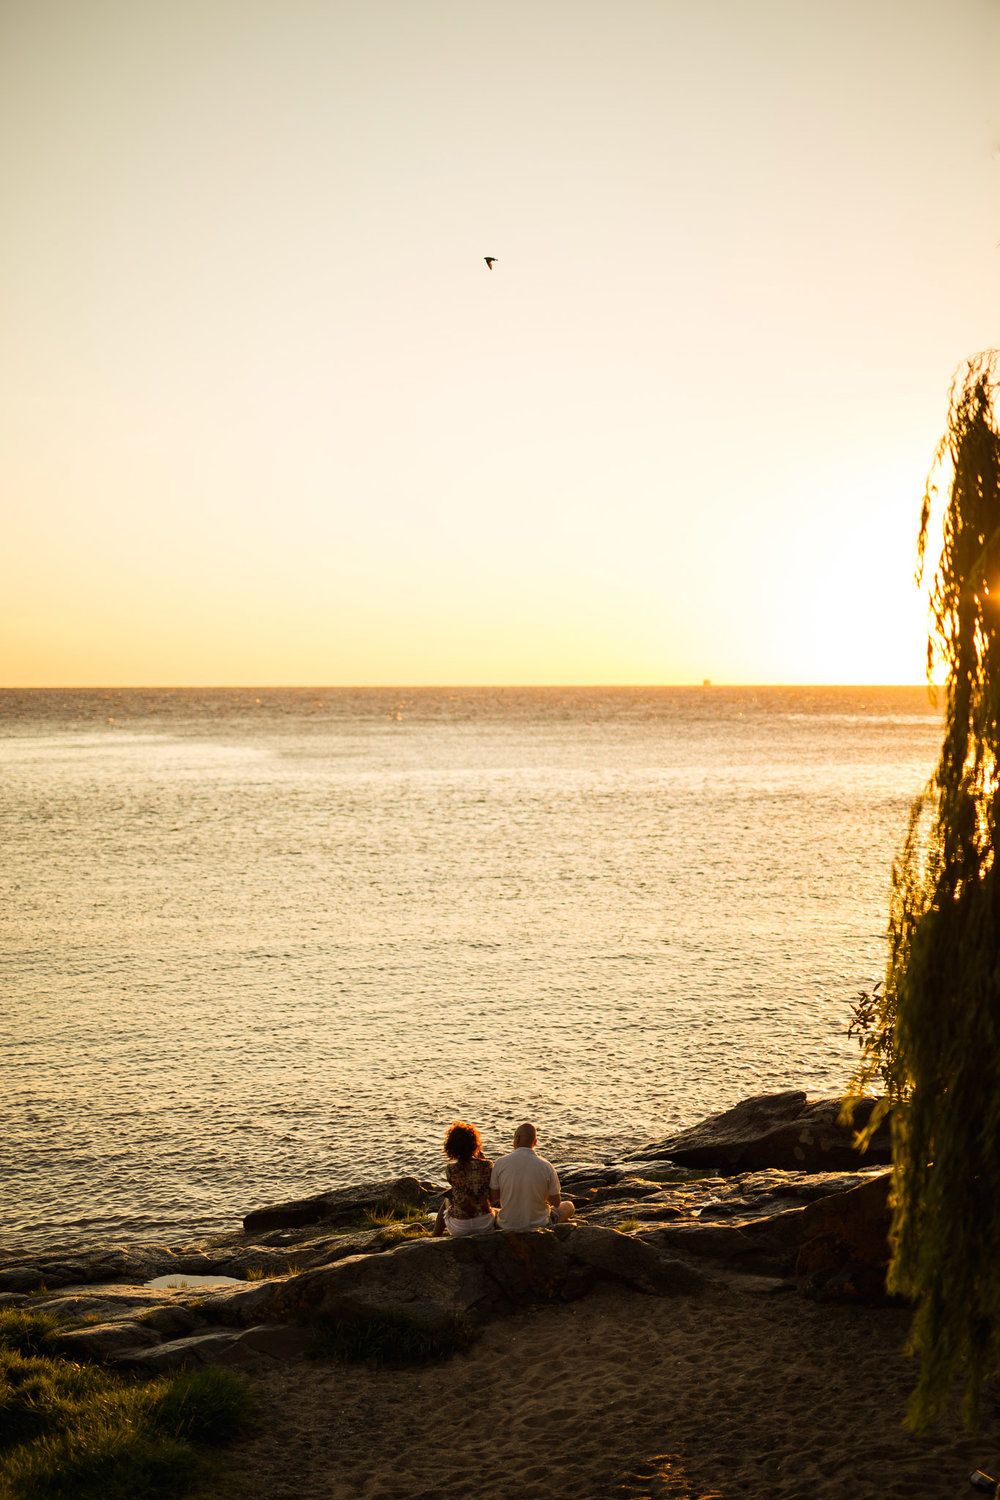 wedding-travellers-destination-photography-overlanding-south-america-uruguay-colonia-del-sacramento-sunset-couple